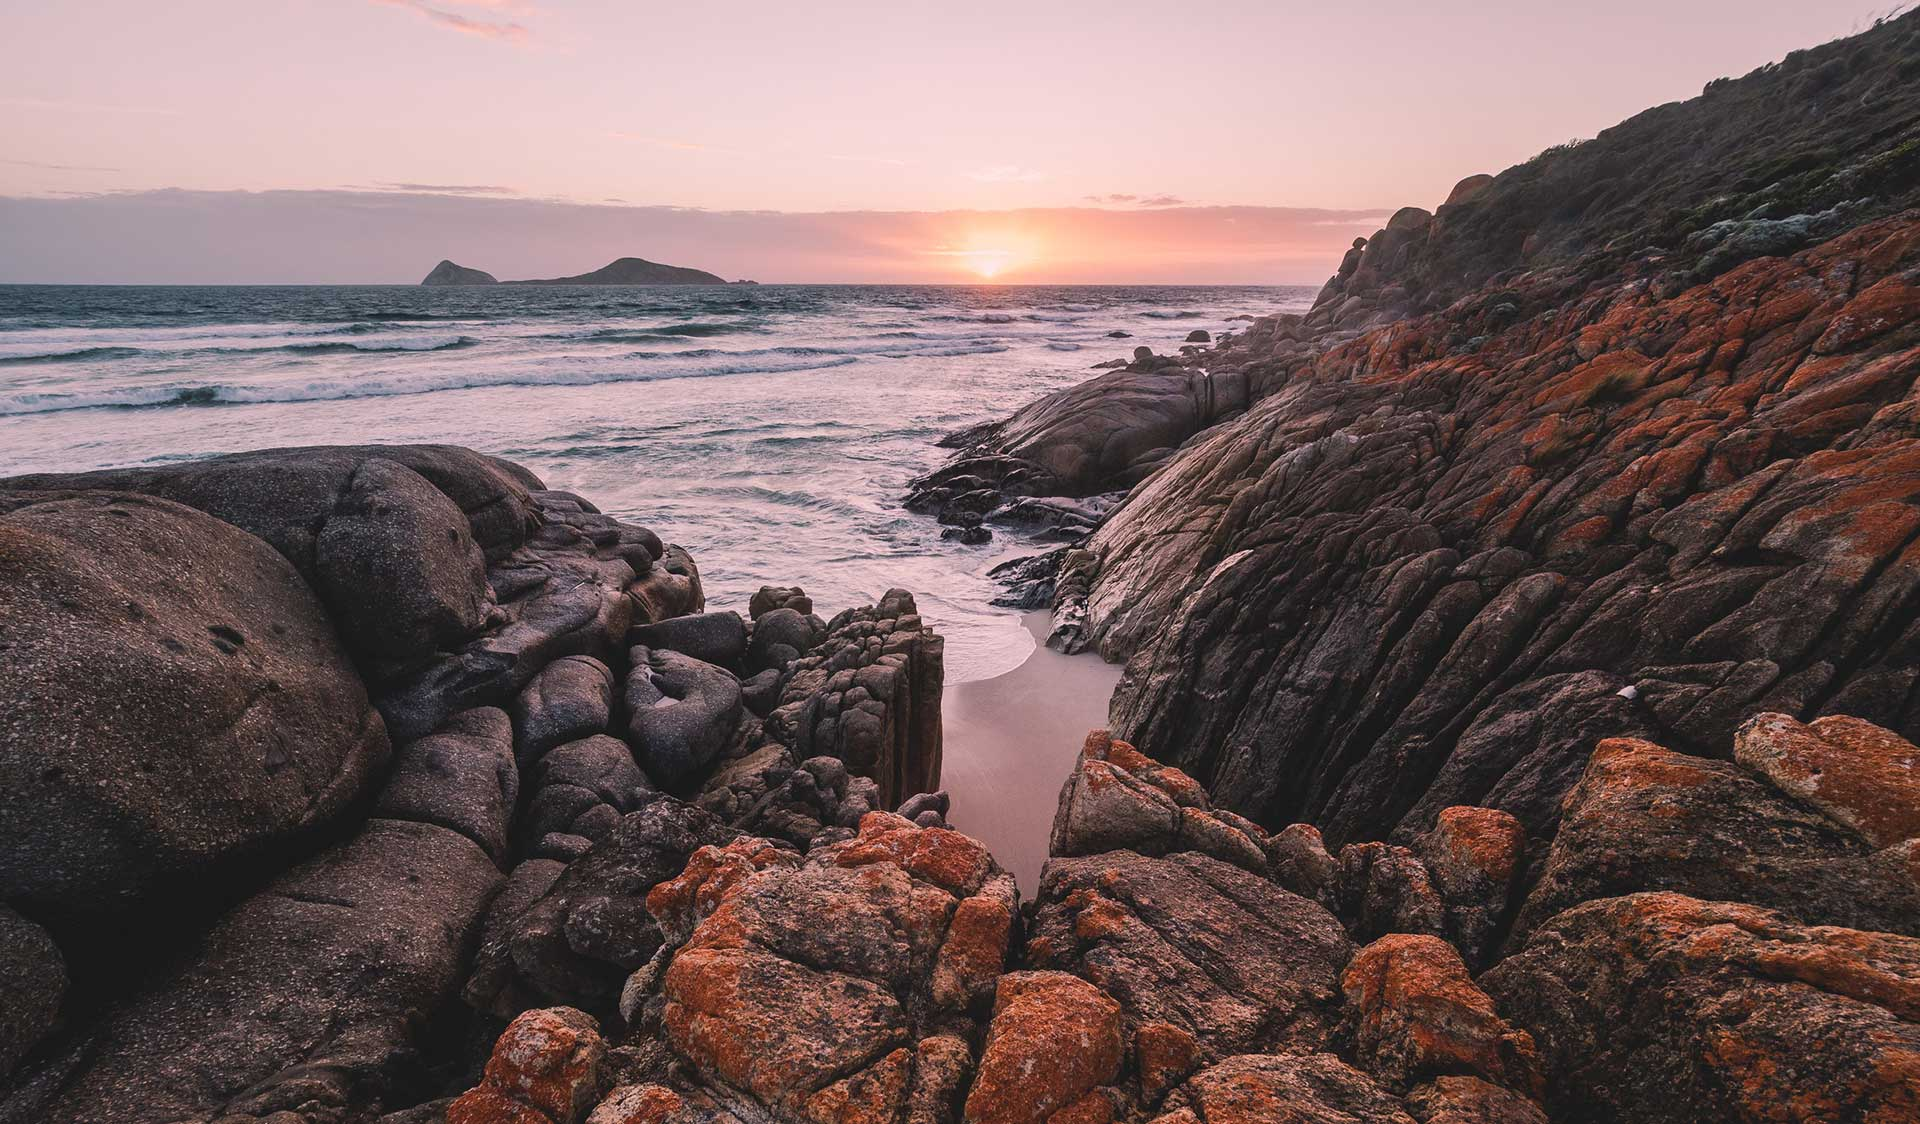 Sunset on the rocks at Whiskey Bay in Wilsons Promontory National Park.